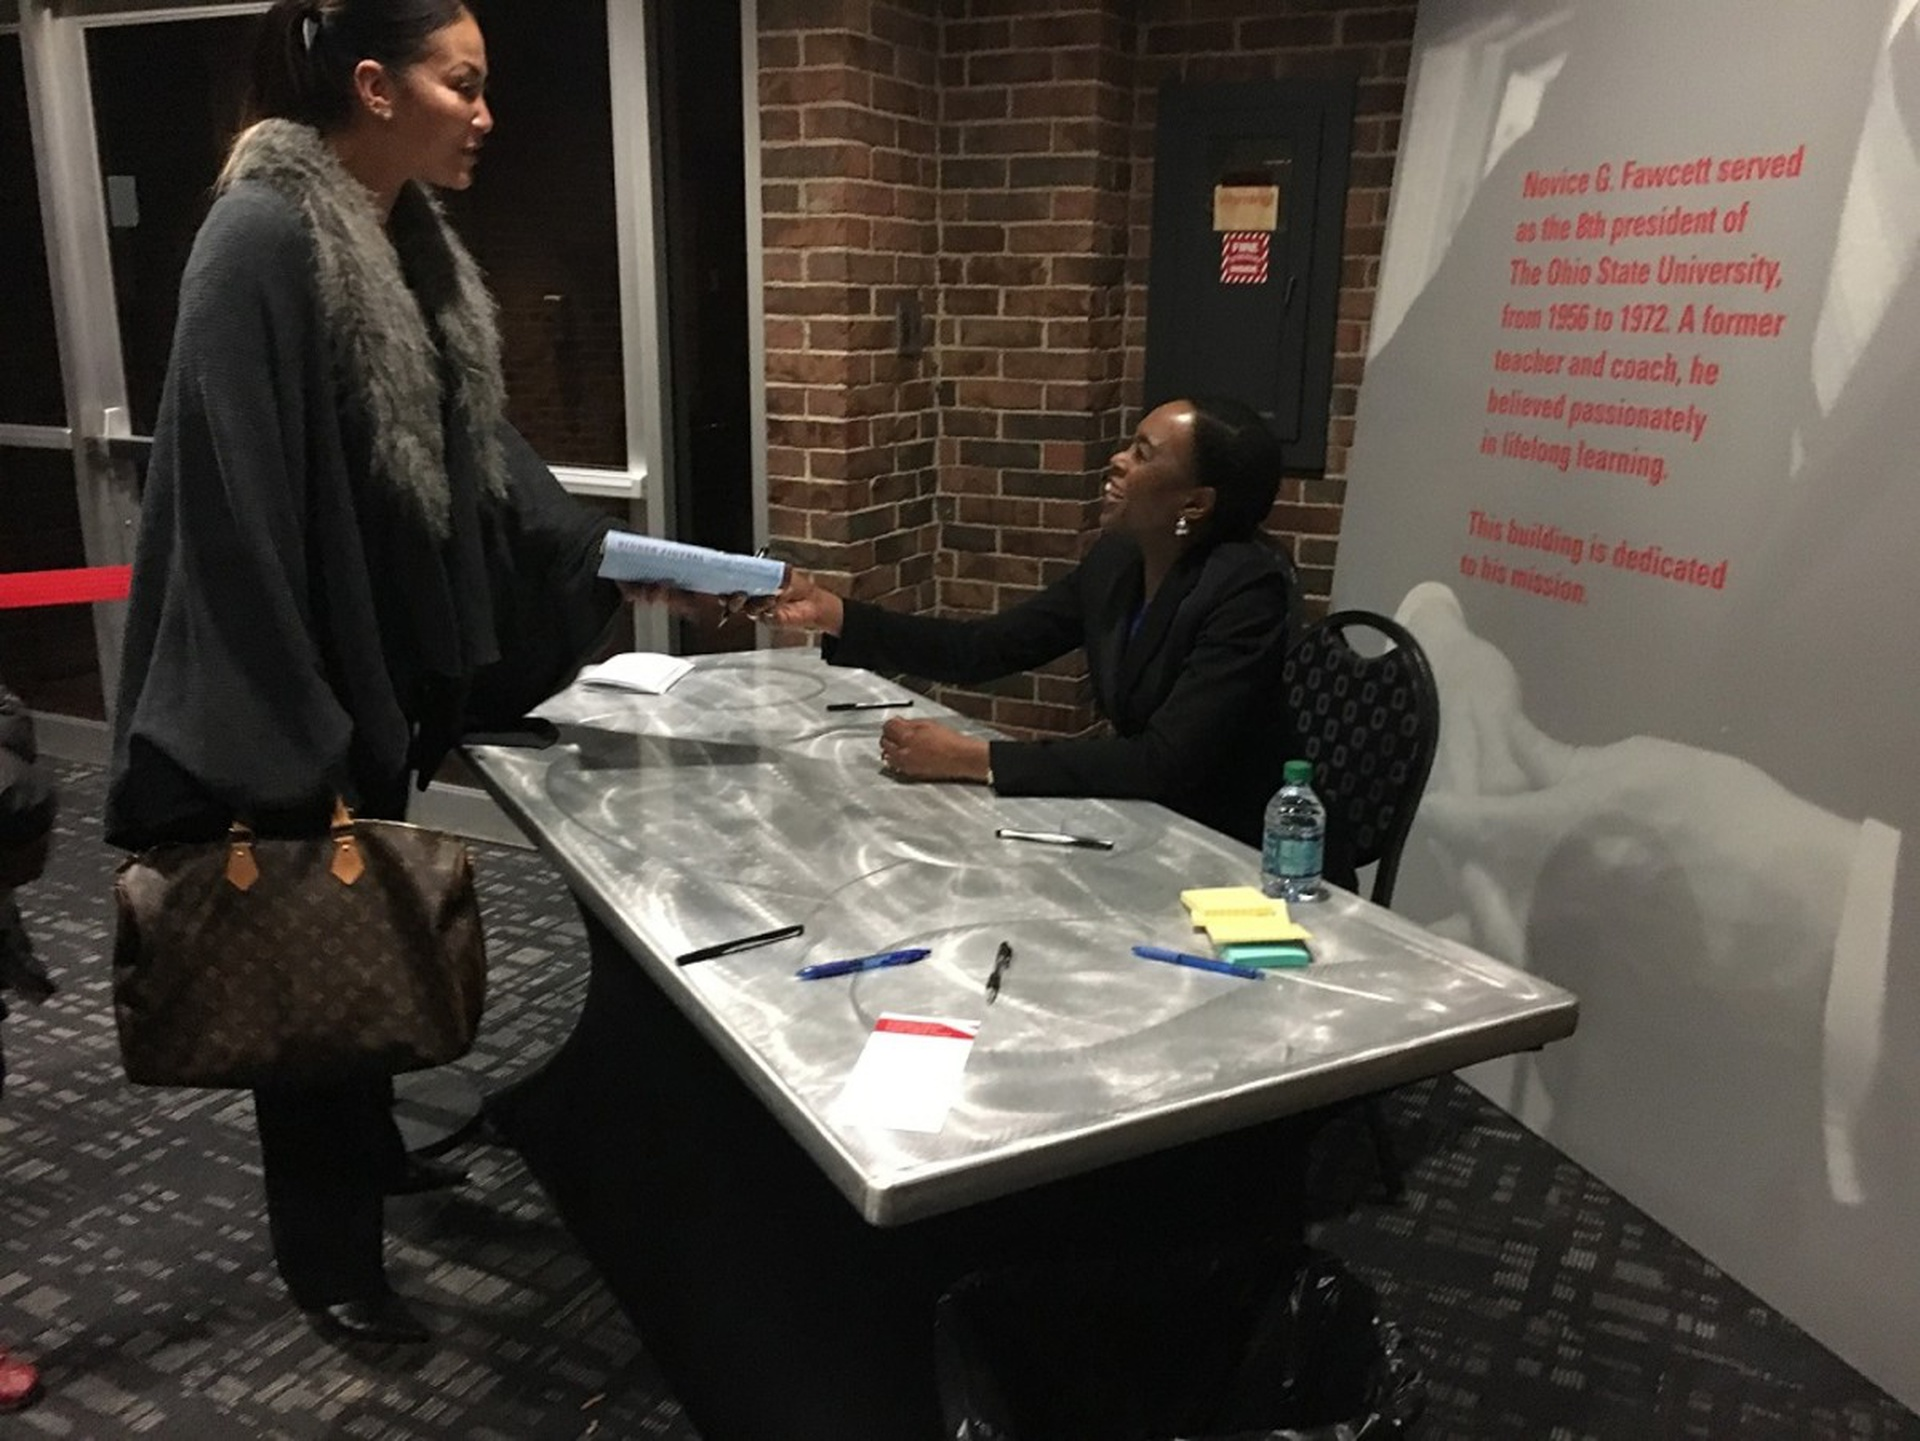 Margot Shetterly (seated) signs copies of her book Hidden Figures